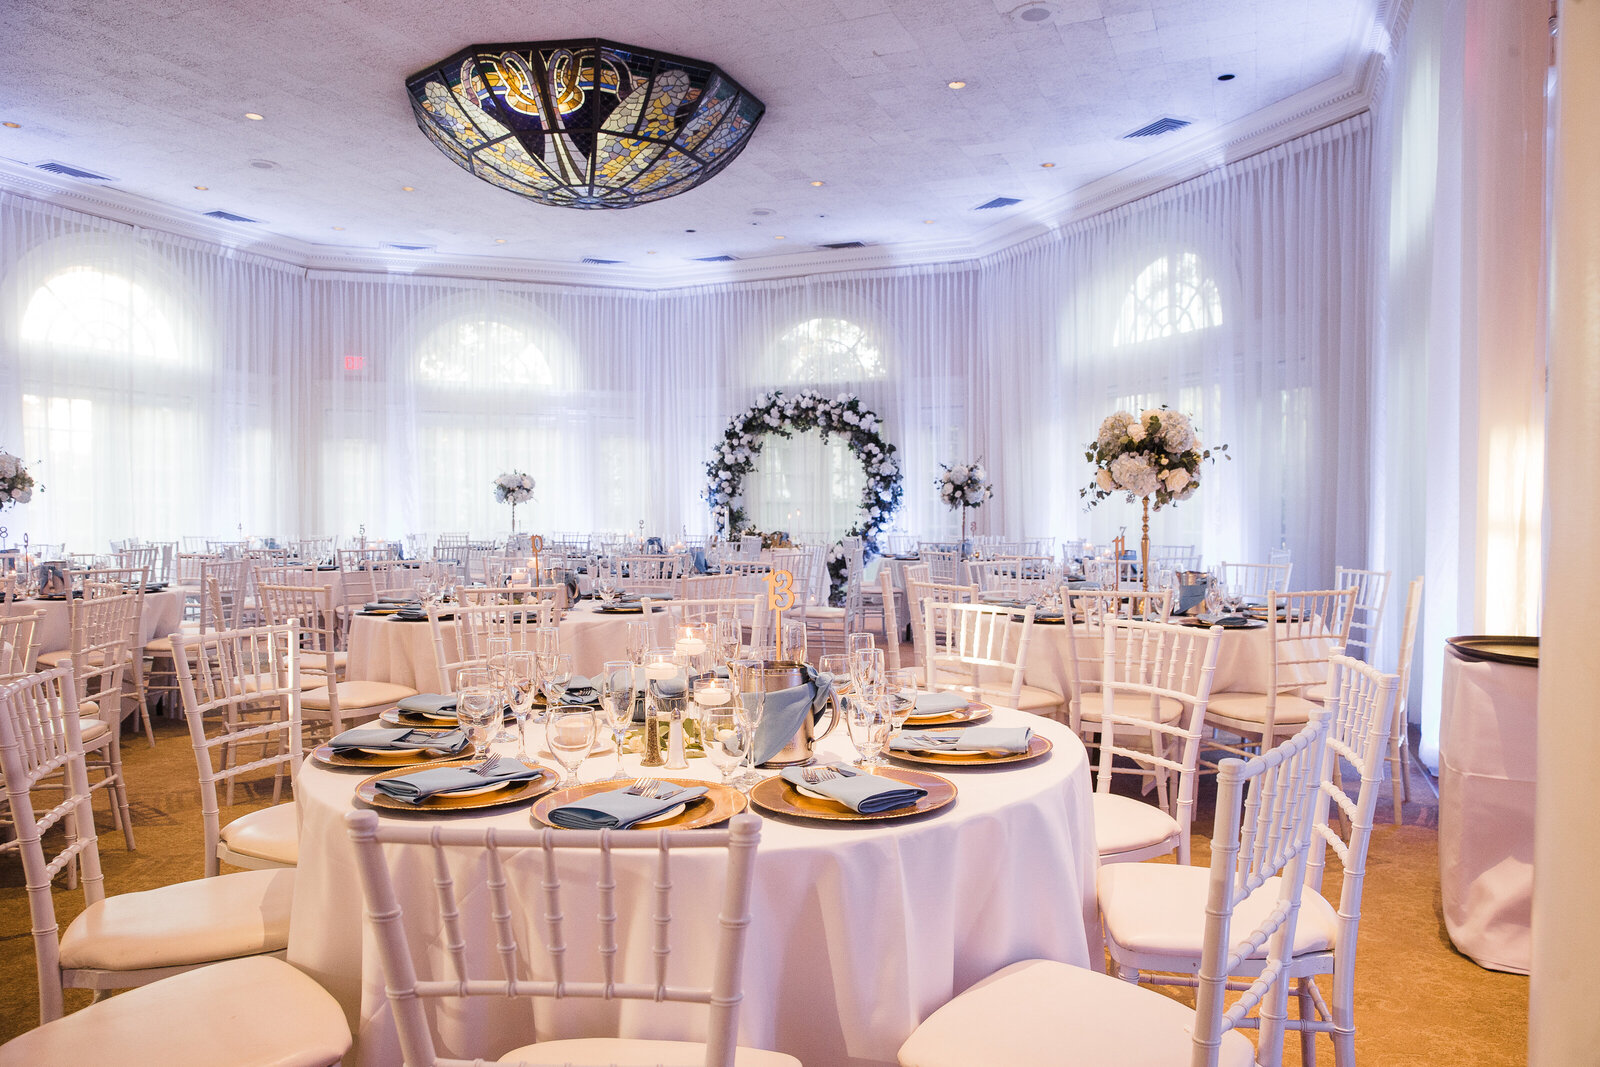 Surrounded by soft draping, the reception guest tables are captured moments before the reception begins.